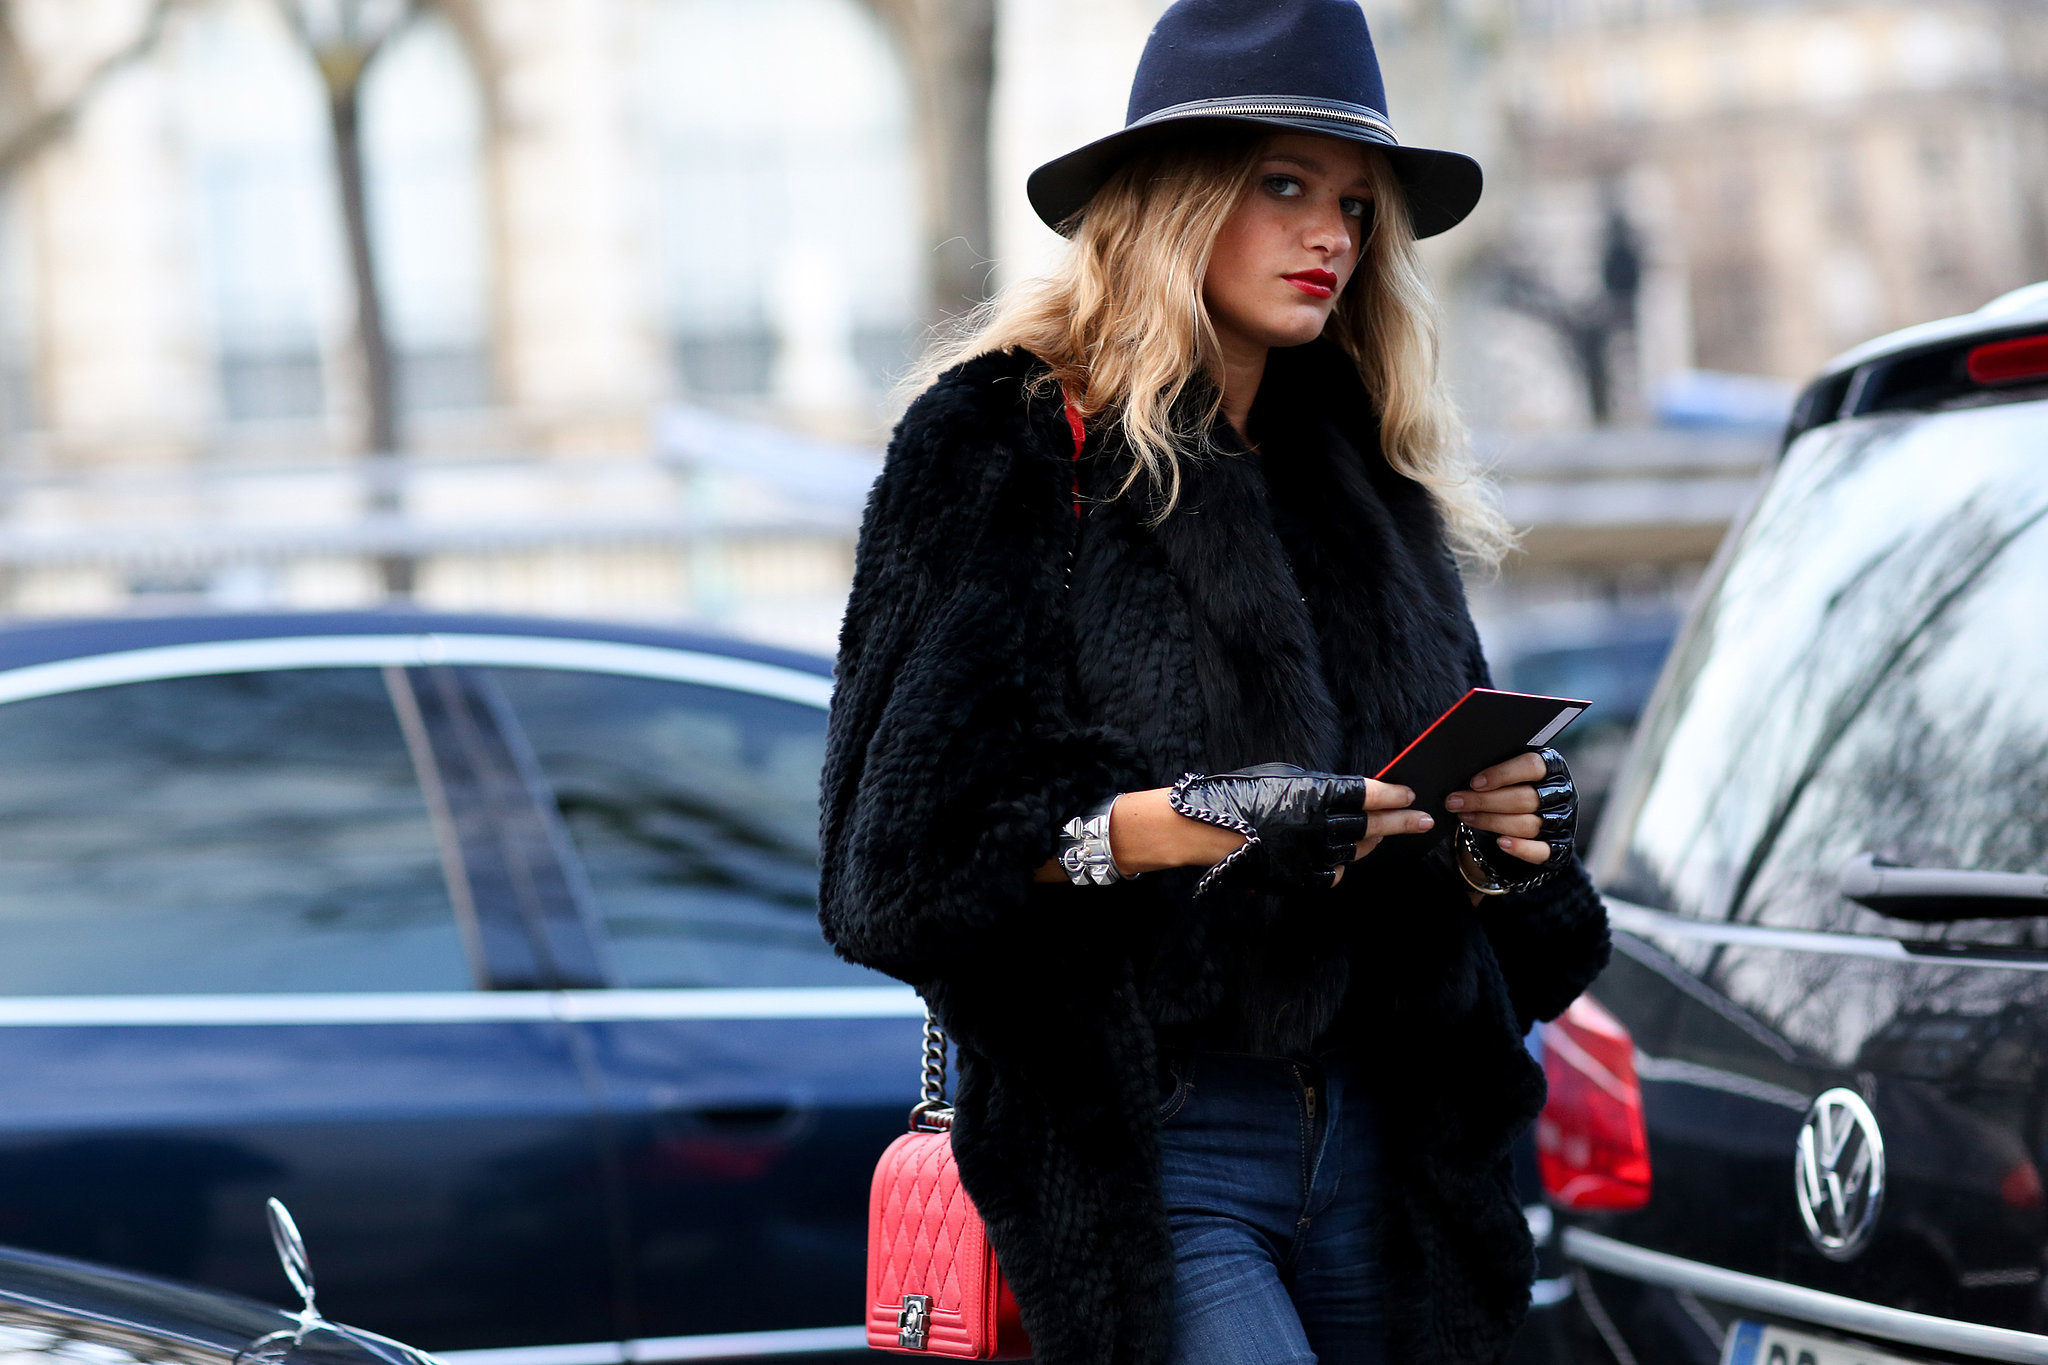 She came armed and ready with ample cool-girl styling accoutrements, as one does in Paris.